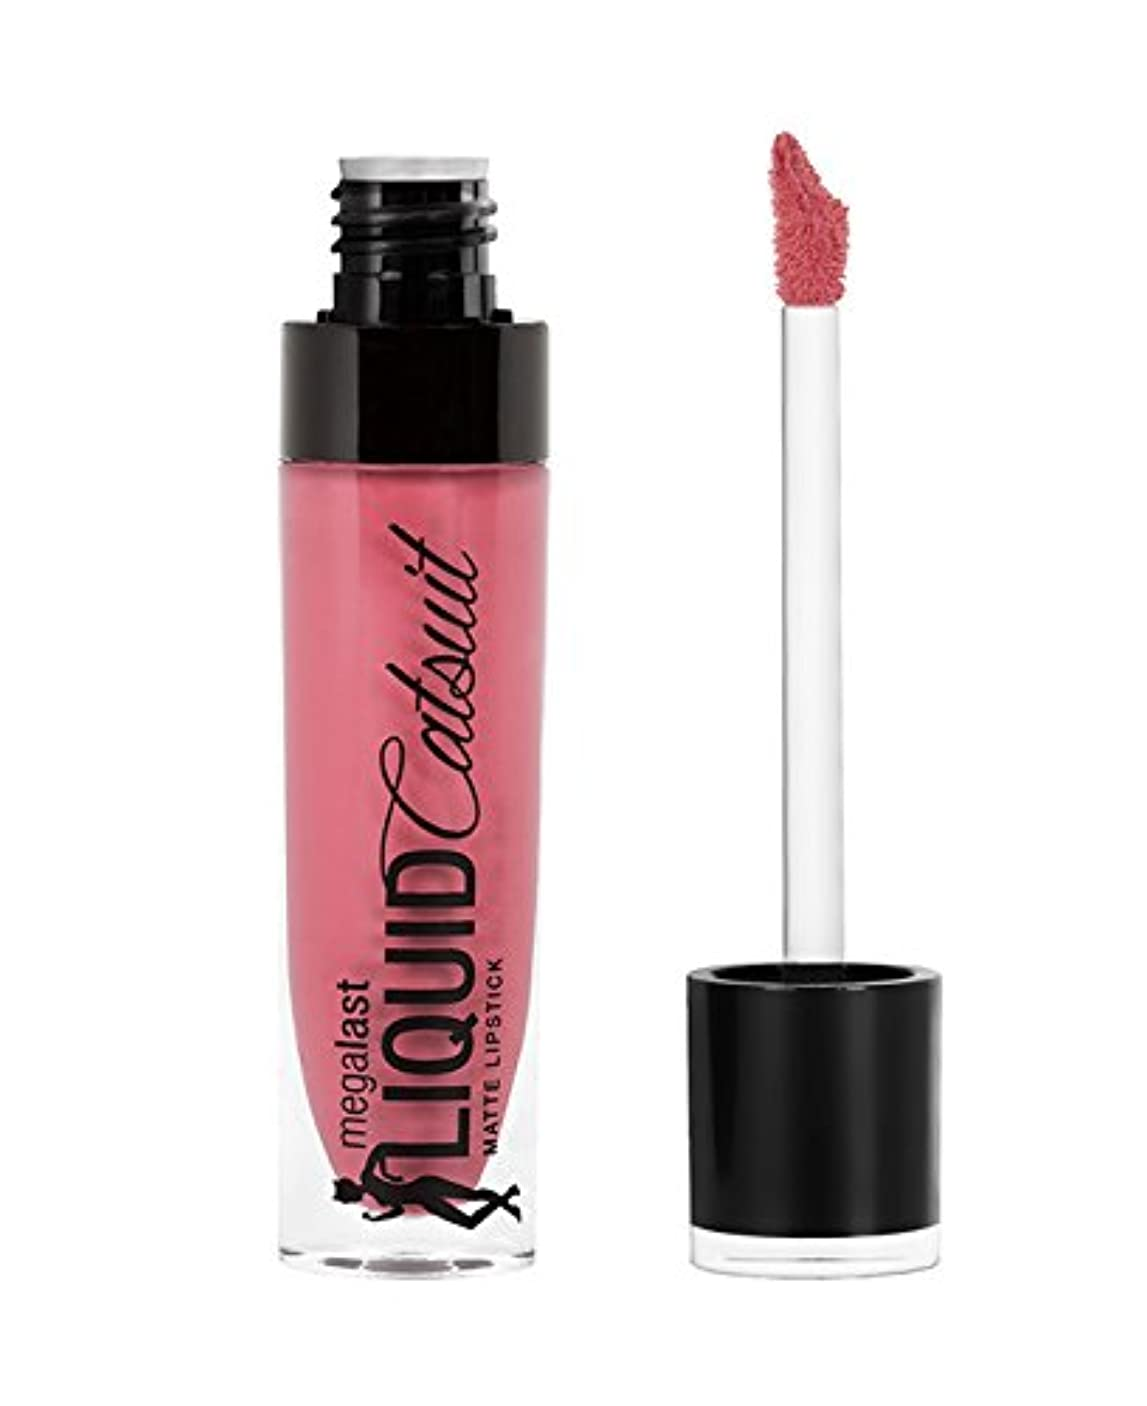 WET N WILD MegaLast Liquid Catsuit Matte Lipstick - Pink Really Hard (並行輸入品)